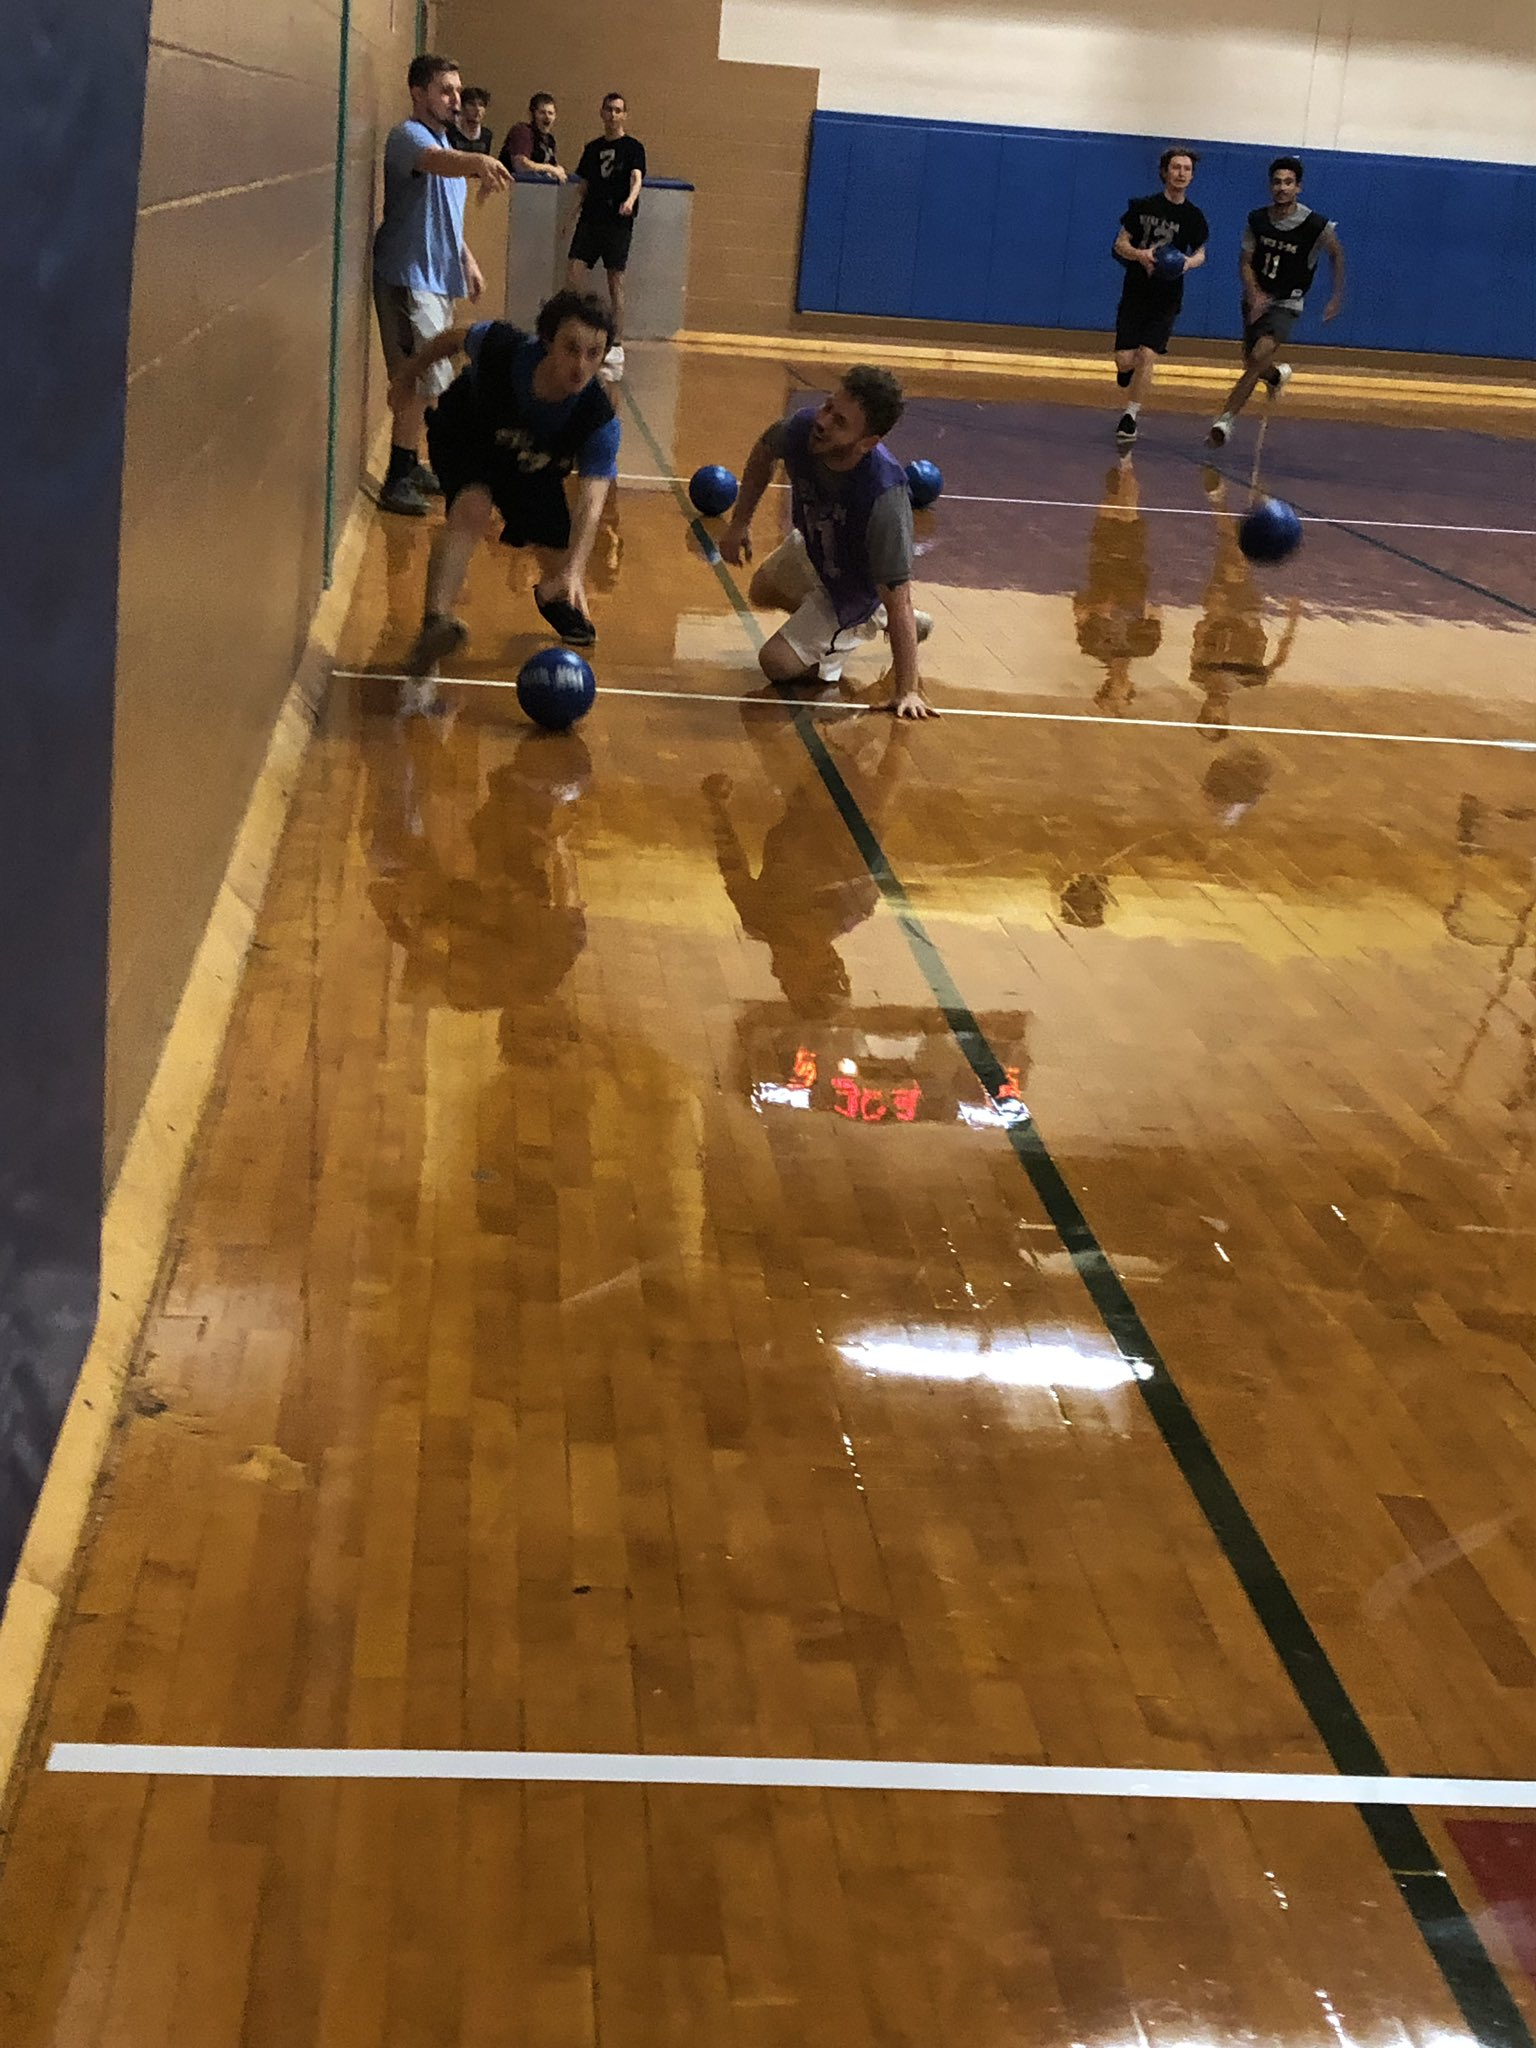 Eiu Intramurals On Twitter Congrats Taylor Hall Boys Dodgeball Champions Taylor Boys Dodged Ducked Dipped Dove And Dodged Past Dirty Richards 3 2 Eiu Rec Eiu Eiuimsports Https T Co Kotjq4fauc